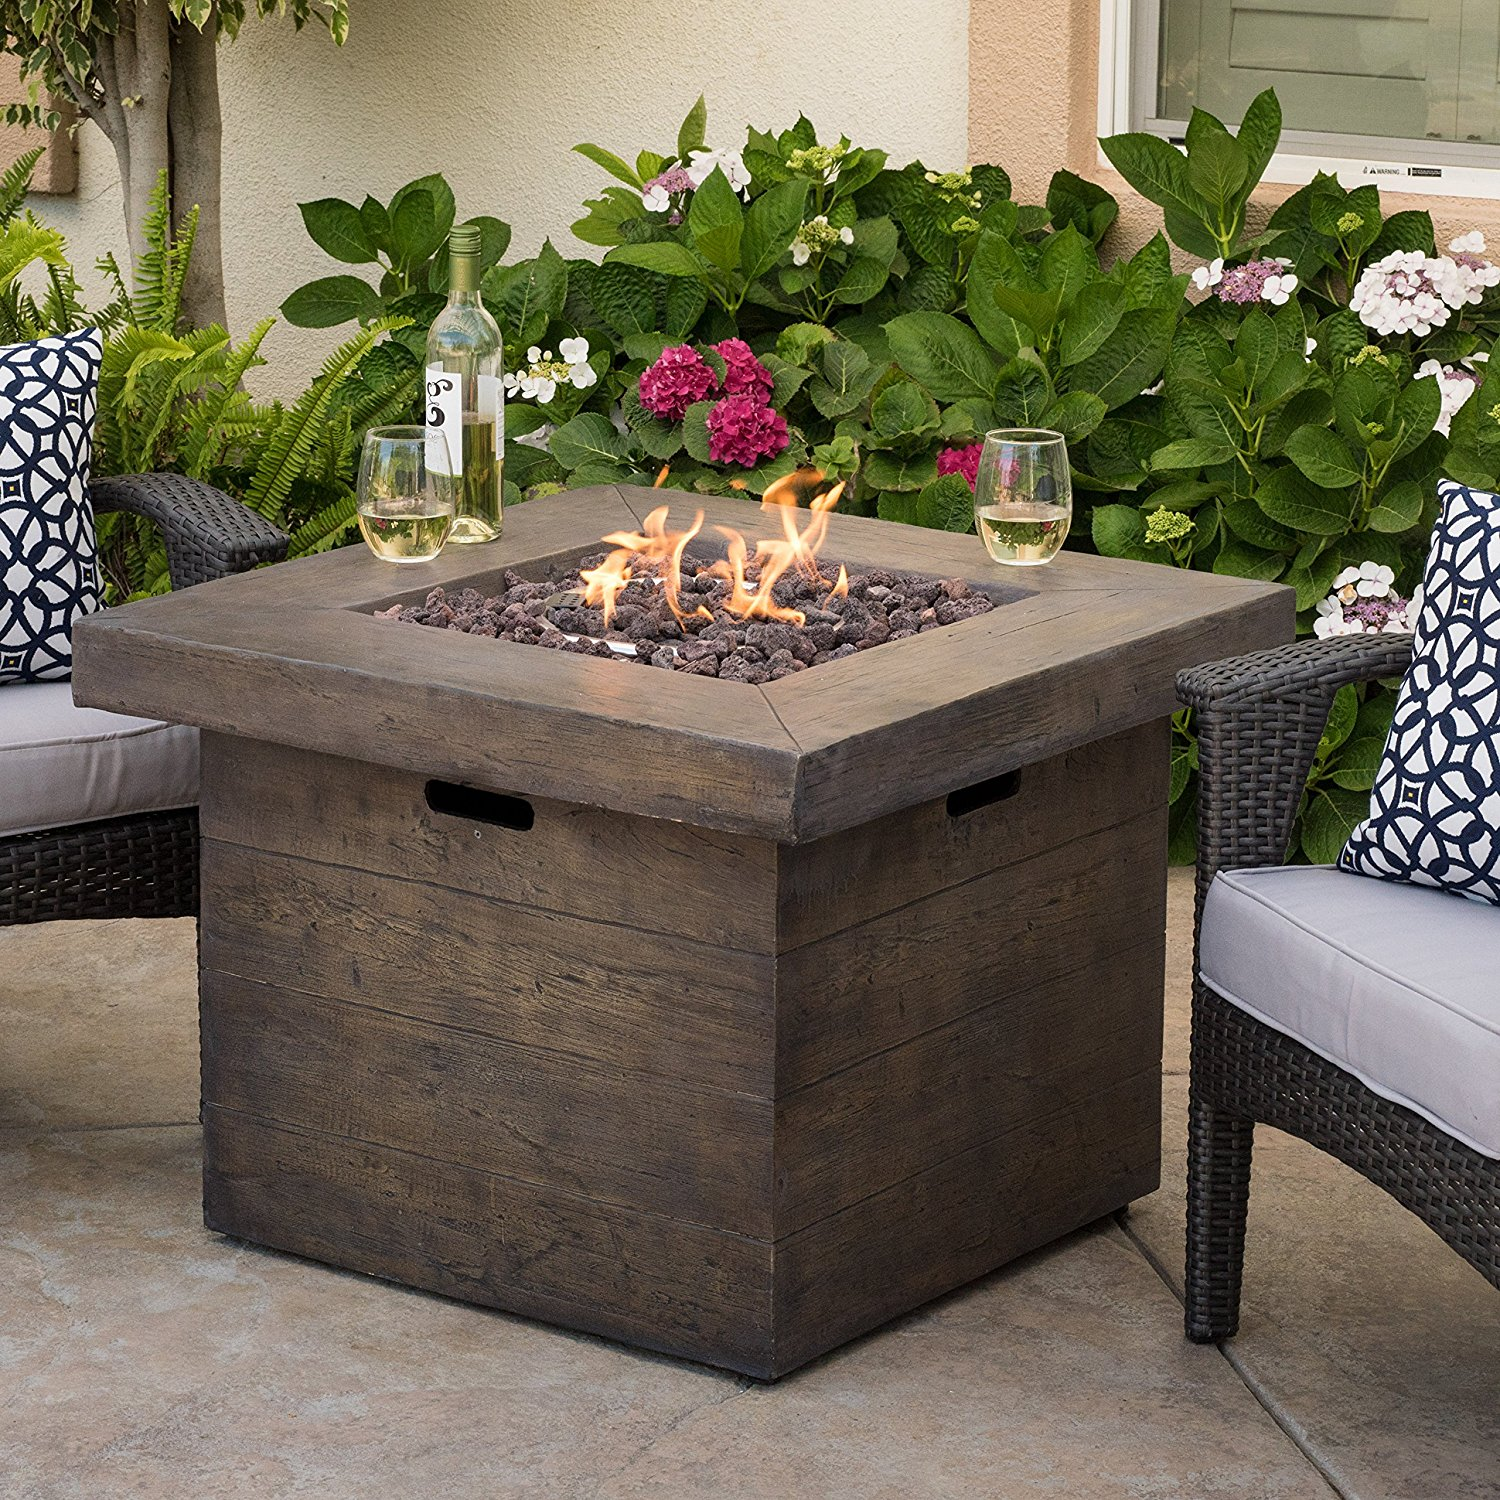 Propane fire pit on wood deck - Things I Liked